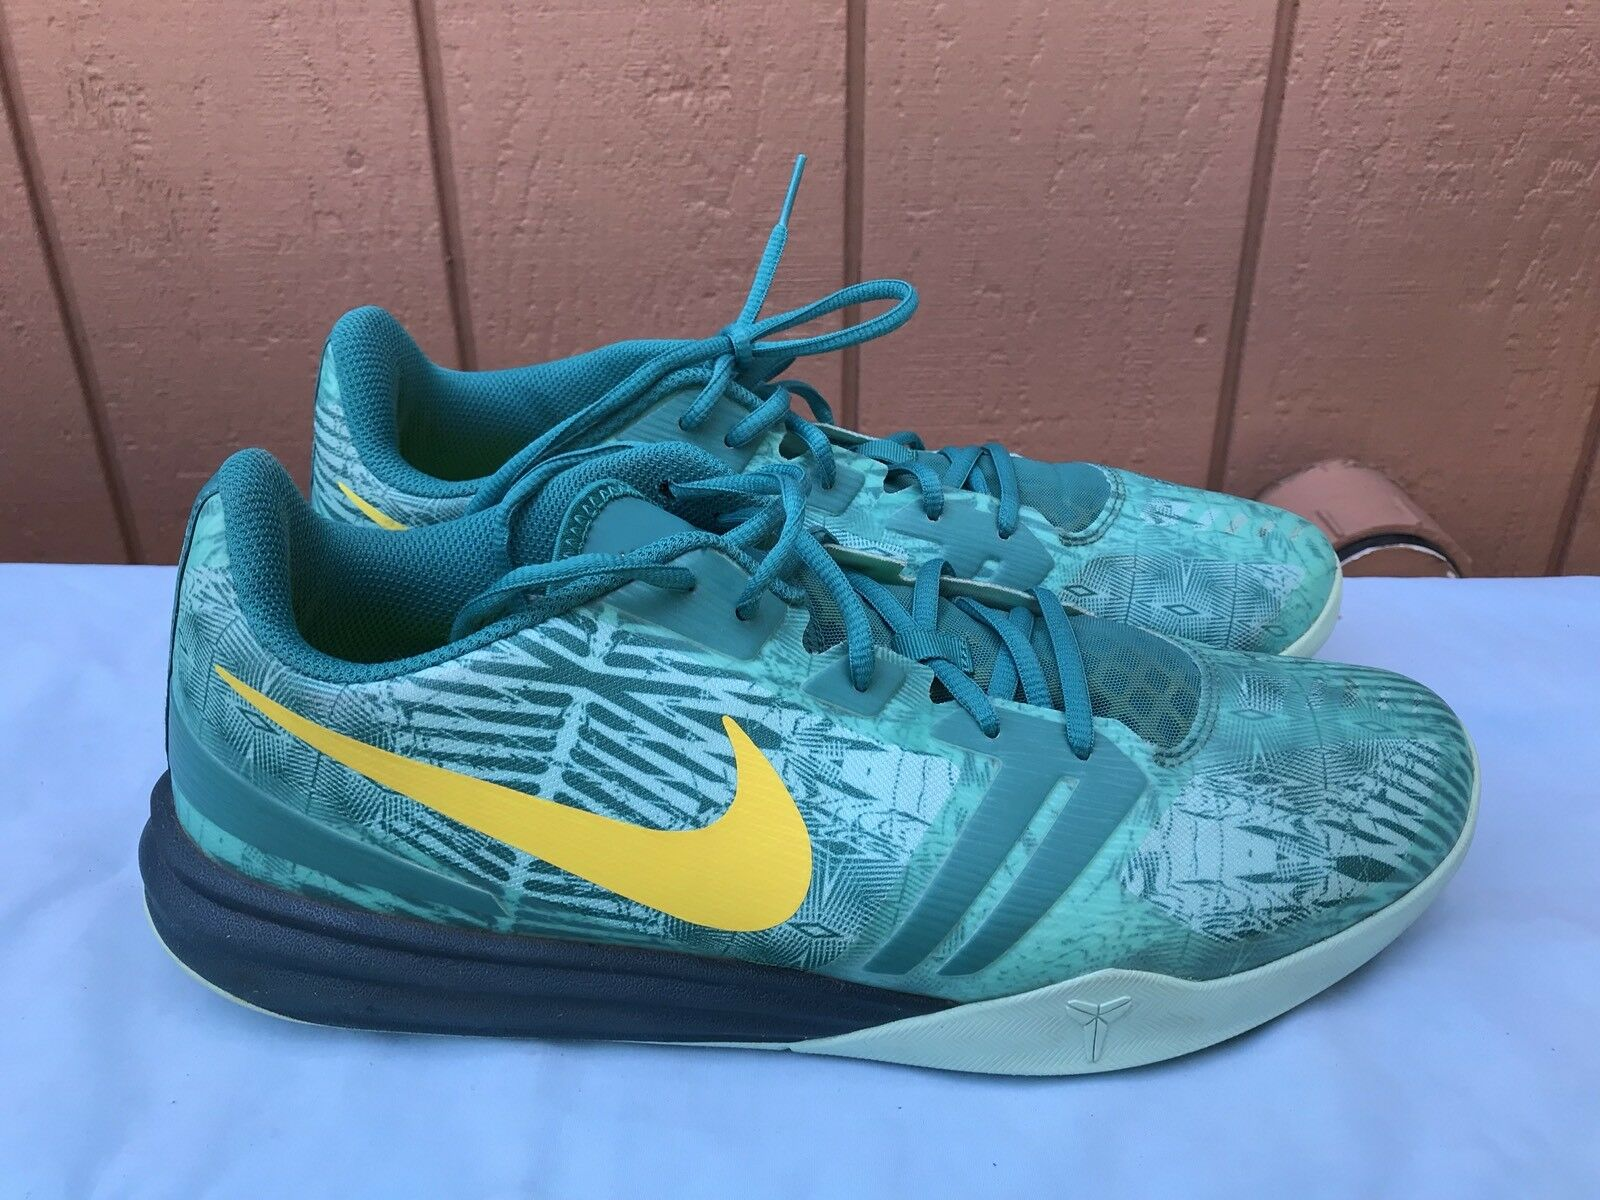 EUC Nike KB Kobe Mentality Men US 13 A6 Basketball Artisan-Teal Green 704942-300 A6 13 93eebc